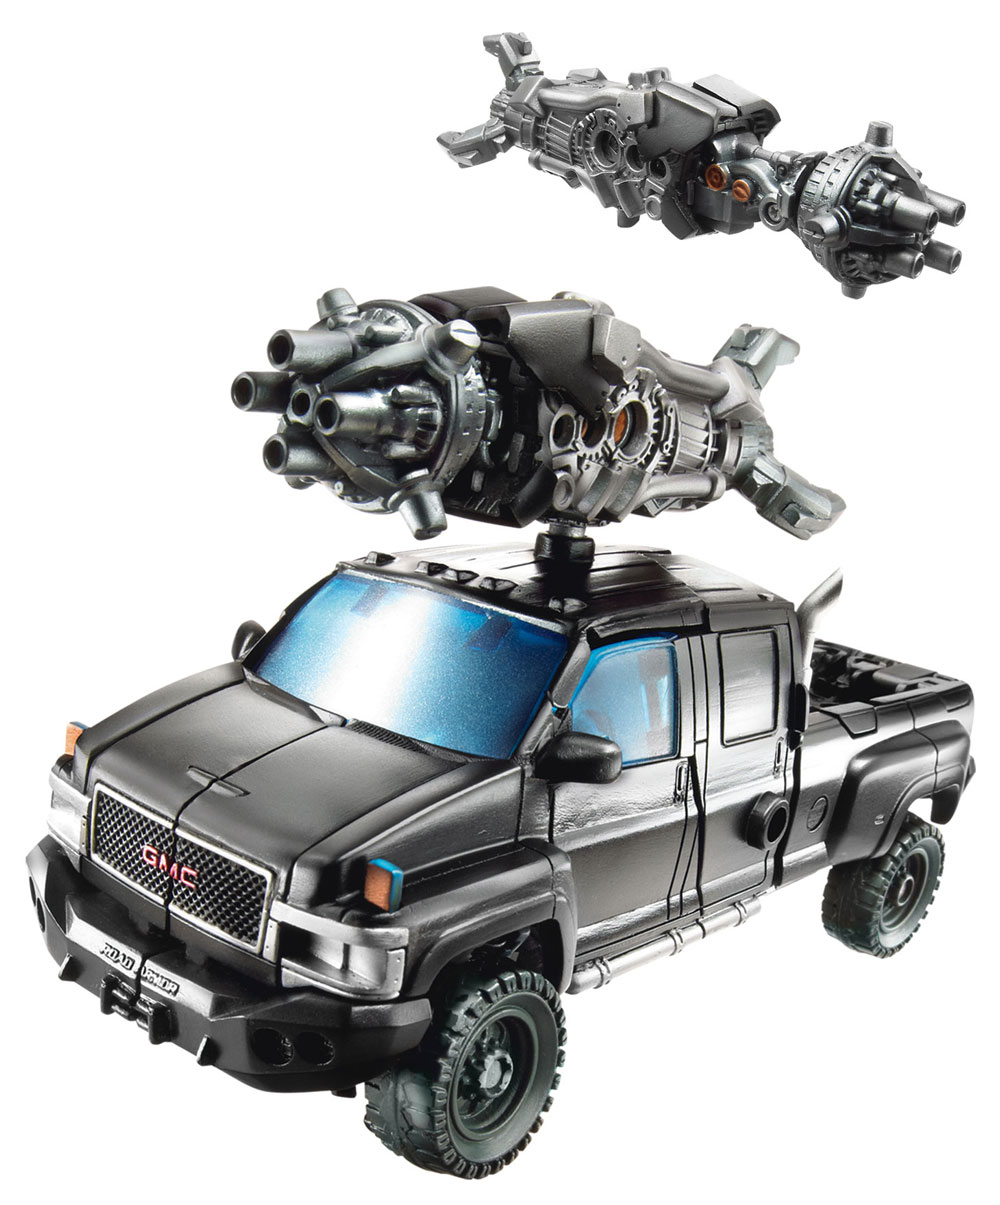 What Kind Of Truck Is Ironhide : truck, ironhide, Ironhide, Starscream, Product, Images, Hasbro, Transformers